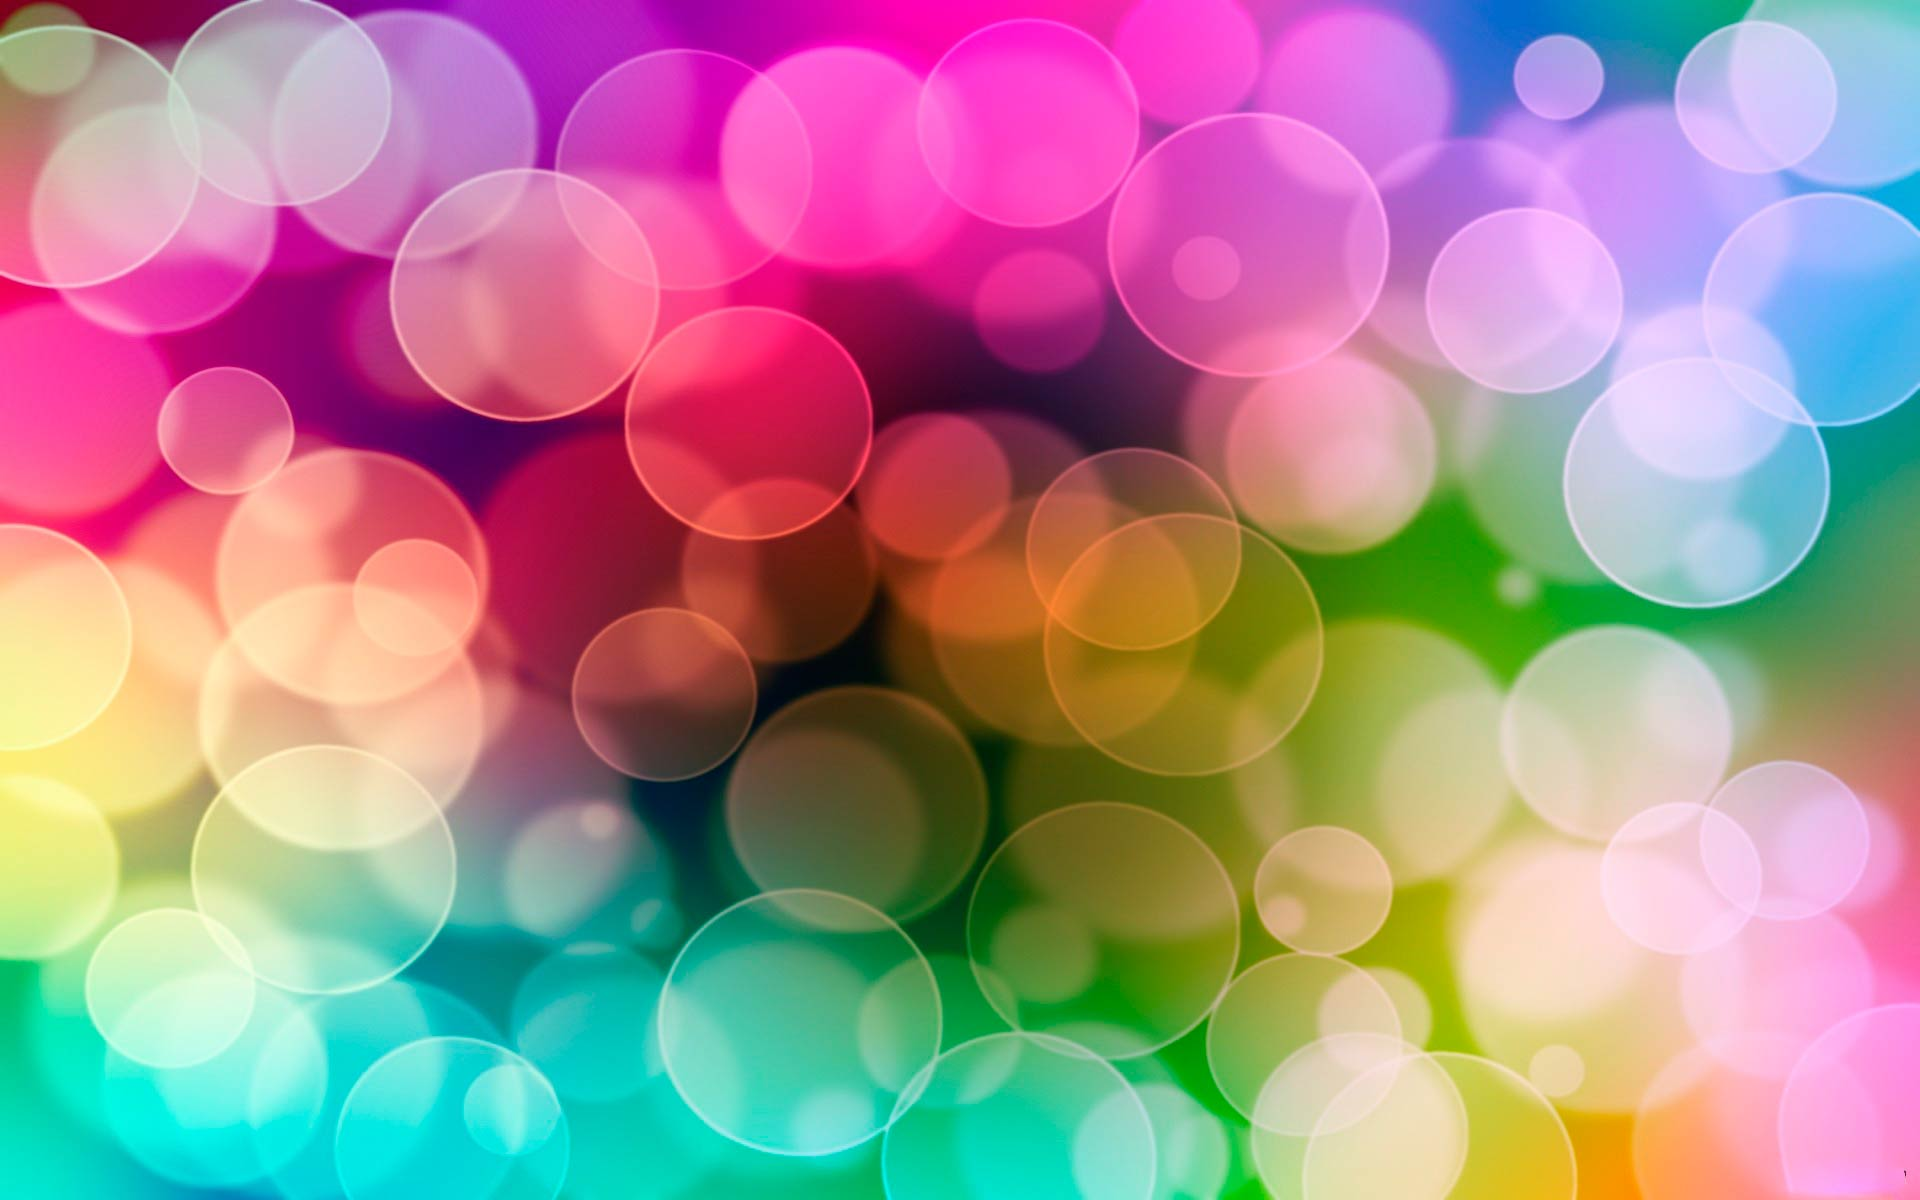 Colorful Abstract Wallpaper 1933 Hd Wallpapers in Abstract   Imagesci 1920x1200